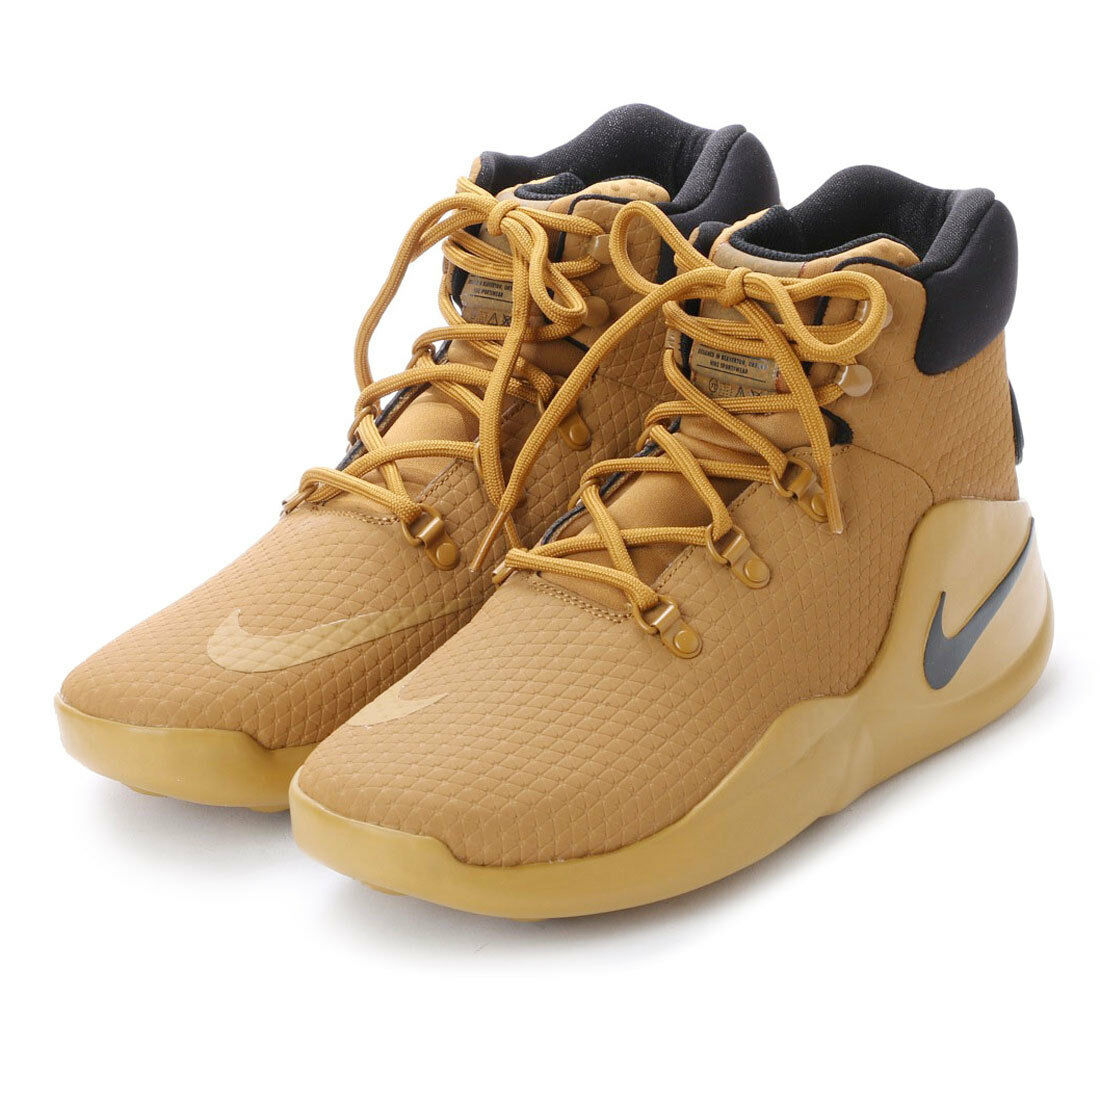 The most popular shoes for men and women New Nike Sizuno AA0548-700 Wheat Black Basketball Shoes Men